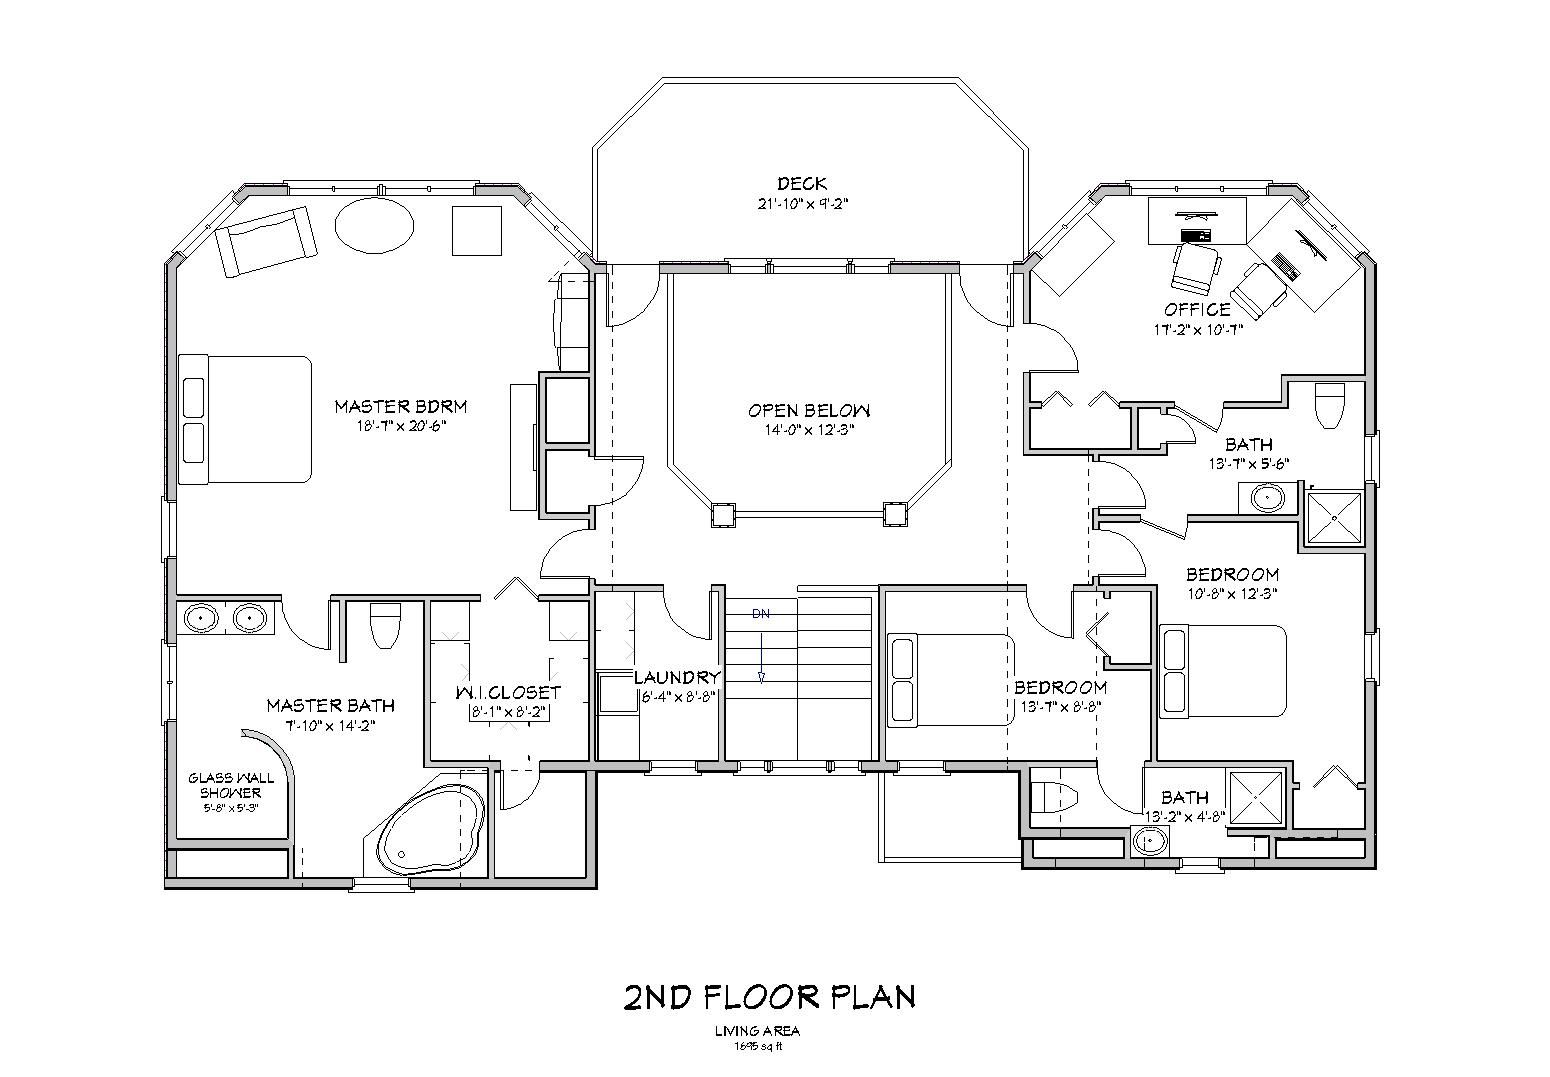 Pin By Susie Gonzales On Renovation Beach House Floor Plans House Floor Plans Beach House Flooring